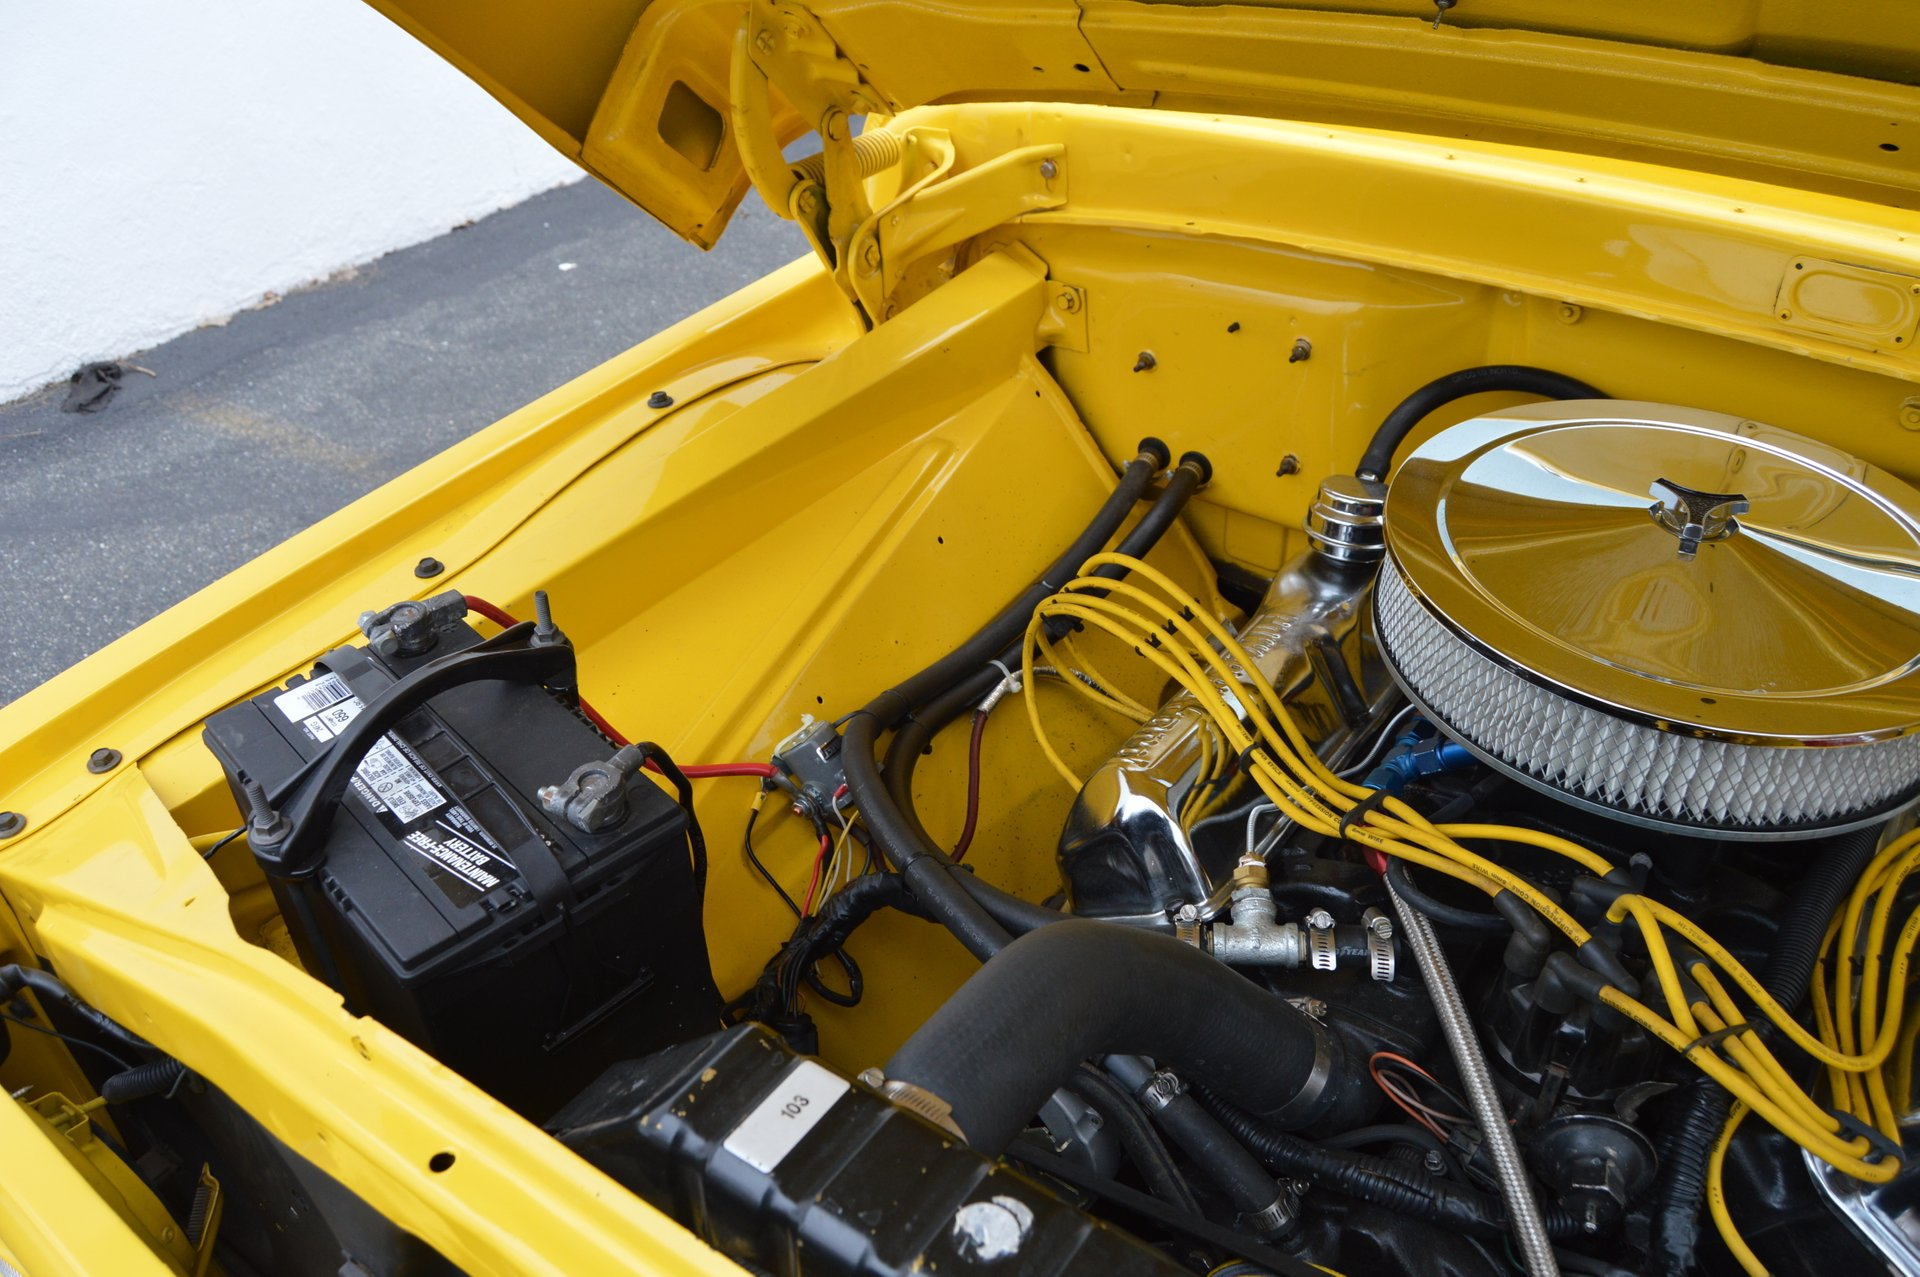 1965 Ford F100 for sale #84581 | MCG